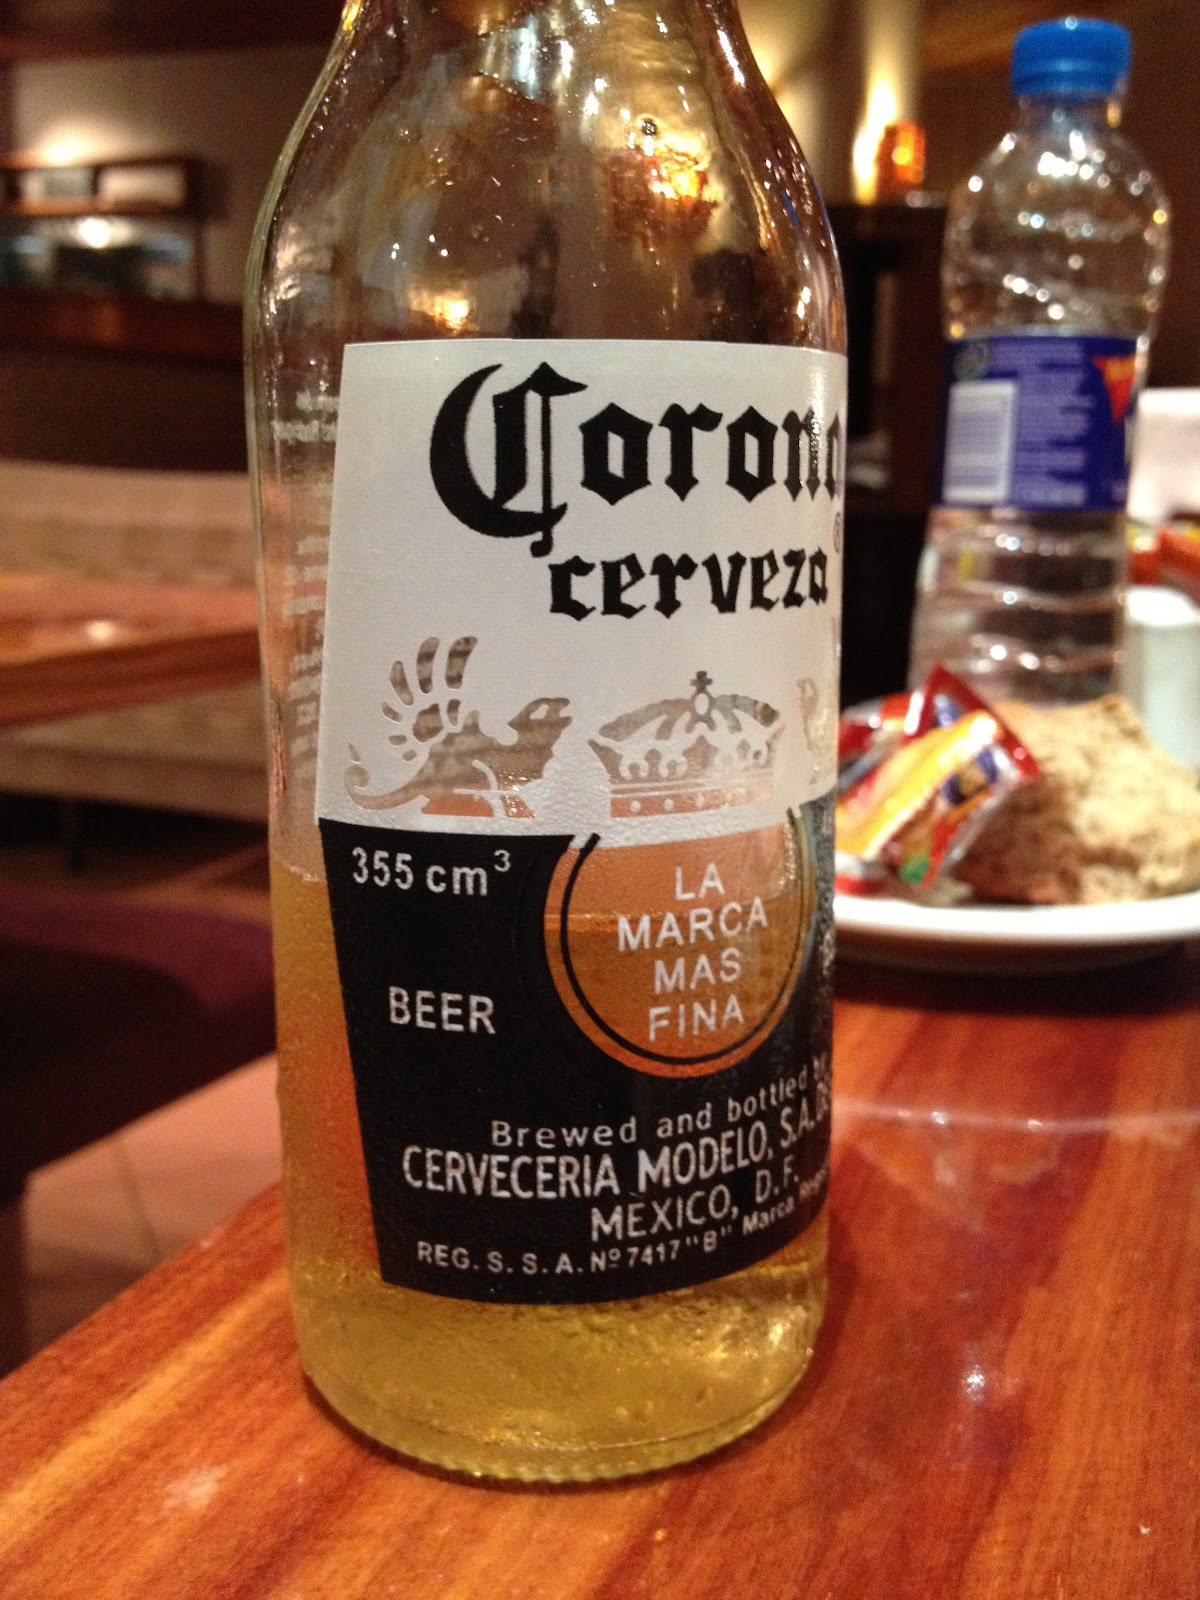 Rare to see Corona in Argentina. Most places only carry 2 Beers - Quilmes and Stella